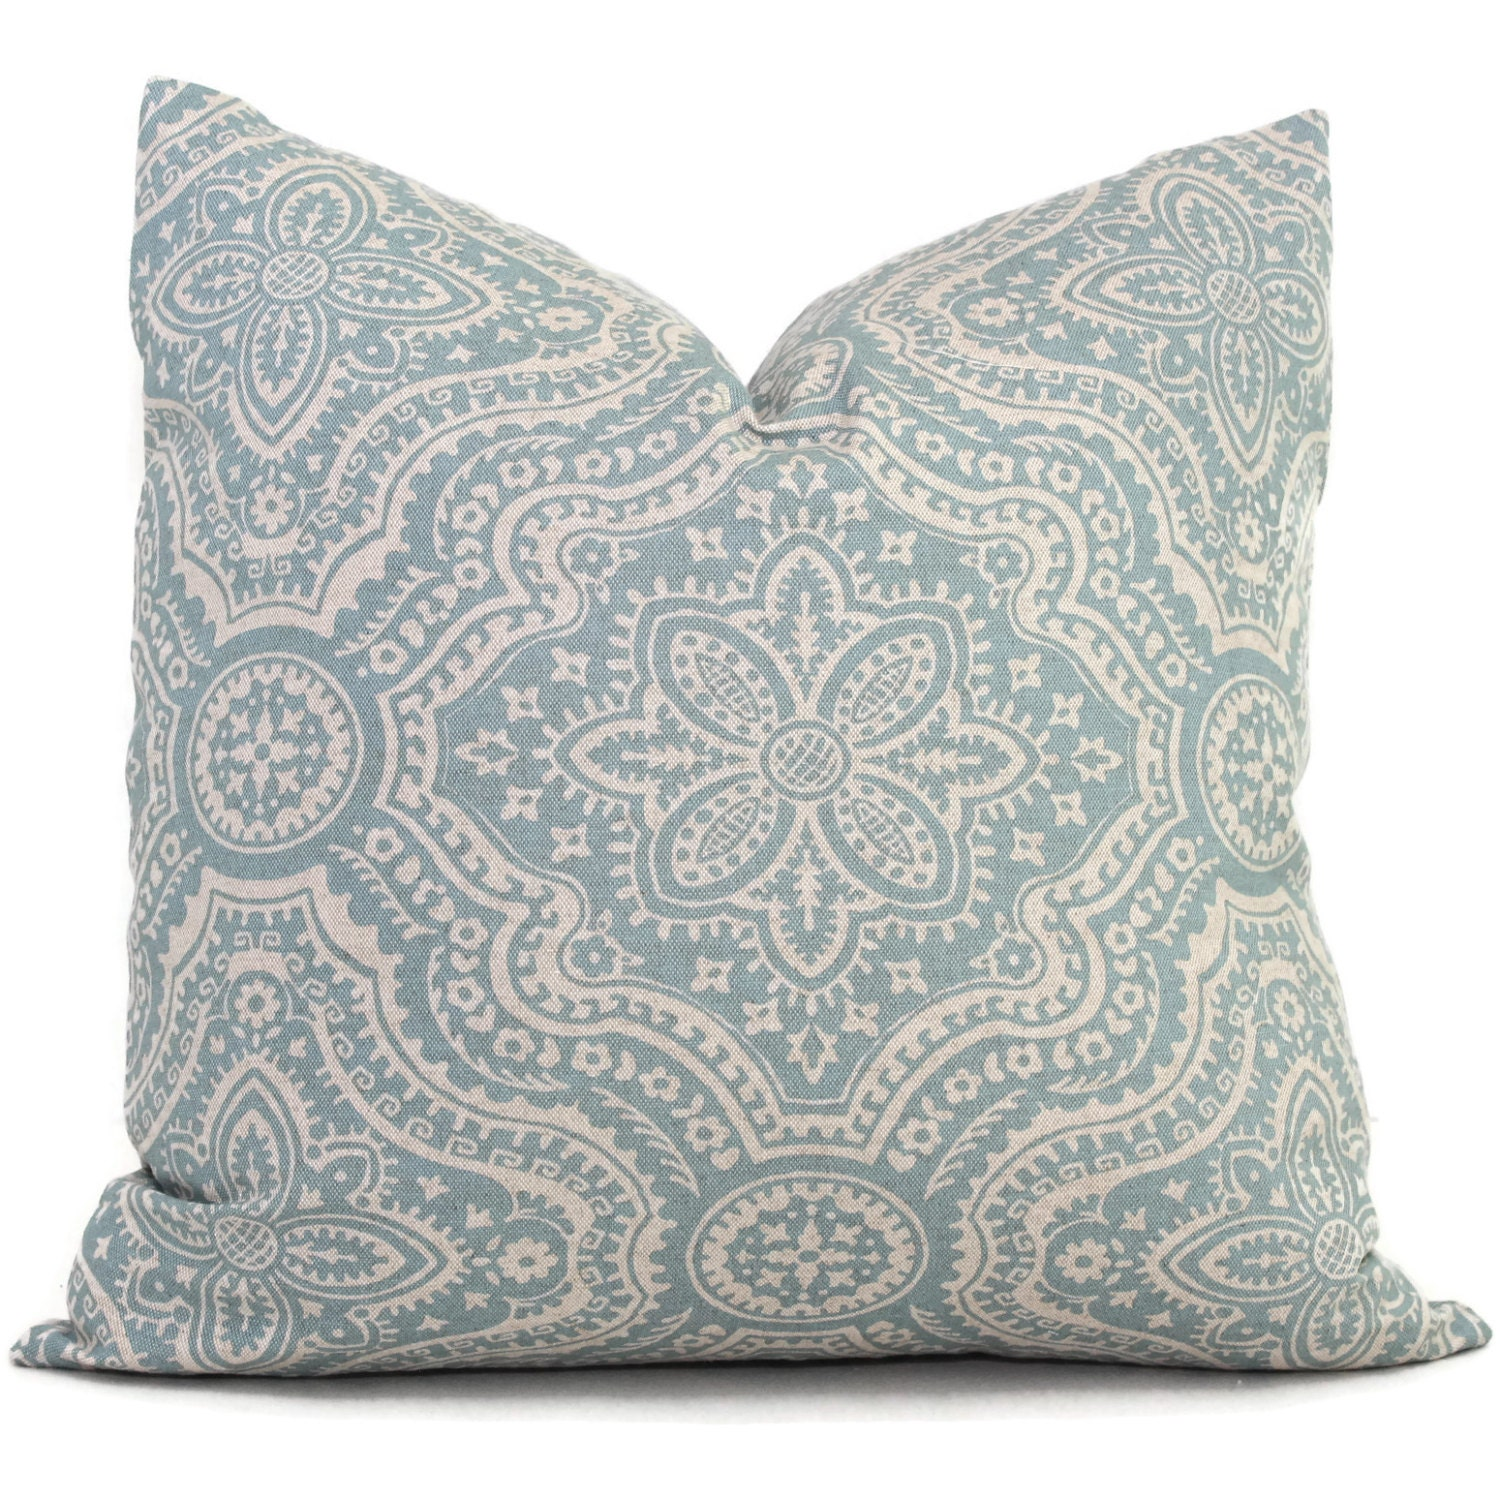 Aqua and gray damask decorative pillow cover square eurosham - Decorative throw pillows ...